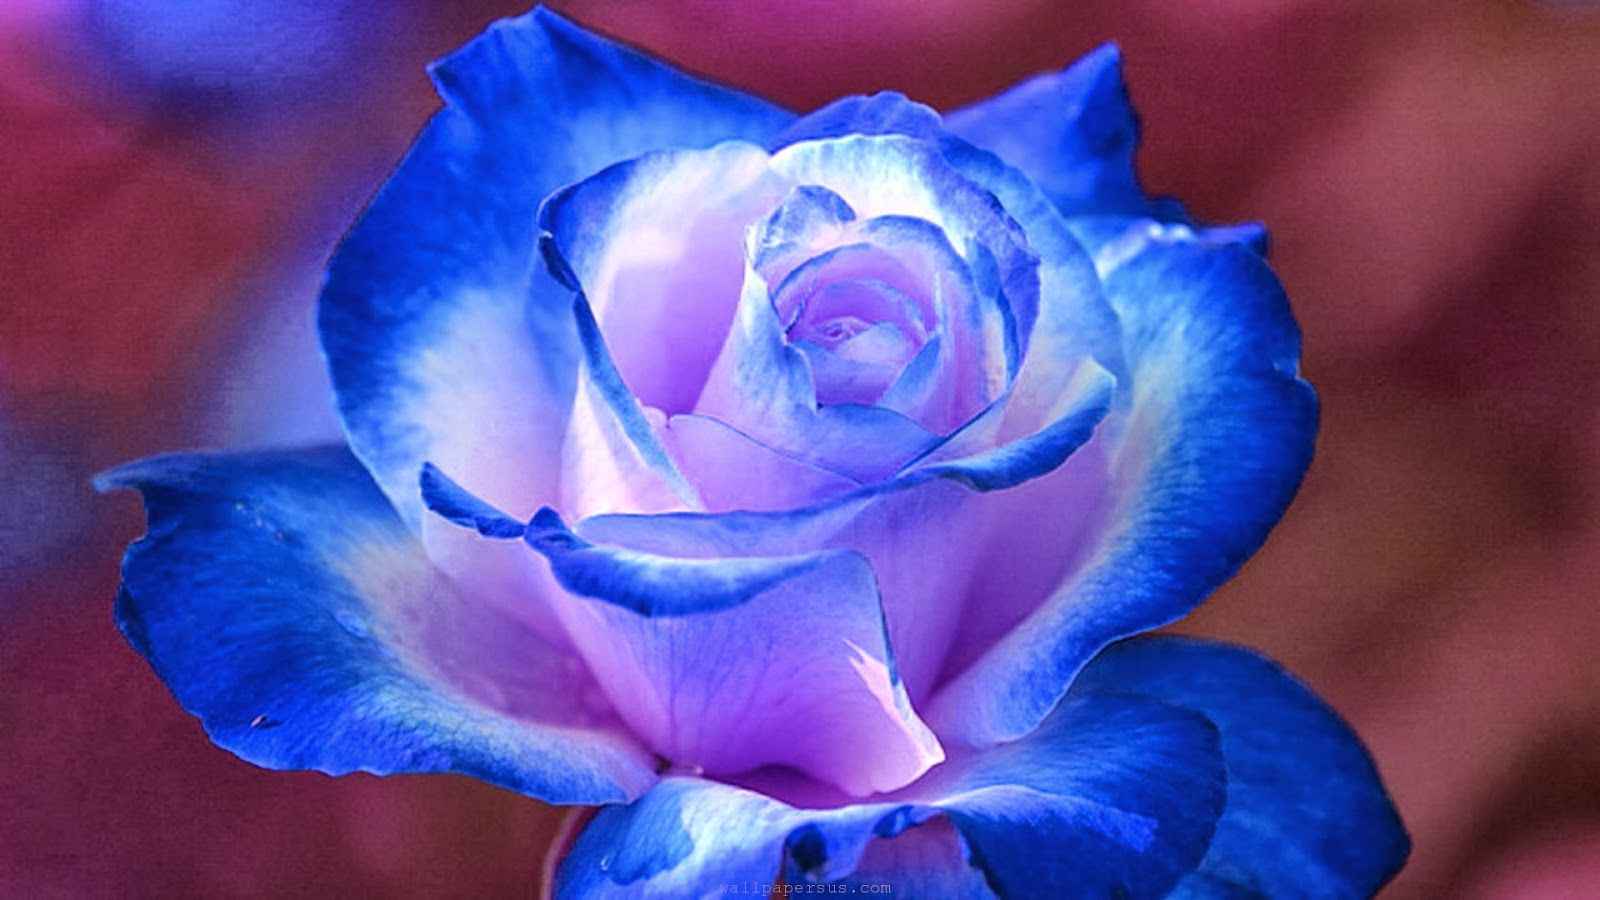 hd wallpapers desktop blue flower hd wallpapers sweet